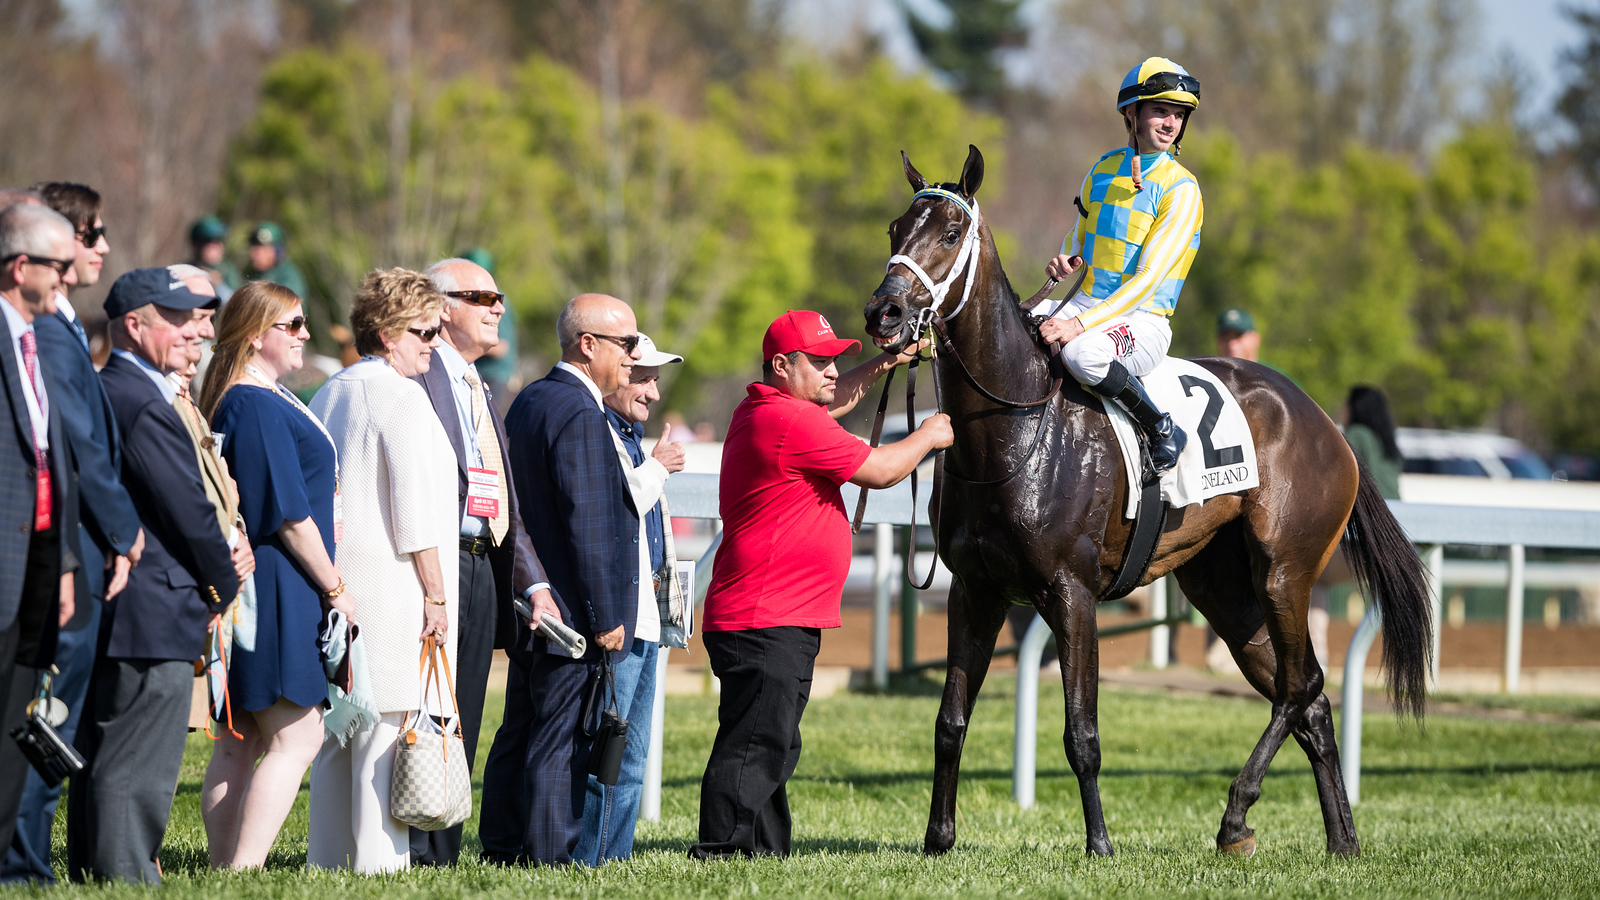 La Coronel (Colonel John) wins the Appalachian at Keeneland on 4.13.2017. Florent Geroux up, Mark Casse trainer, John Oxley owner.